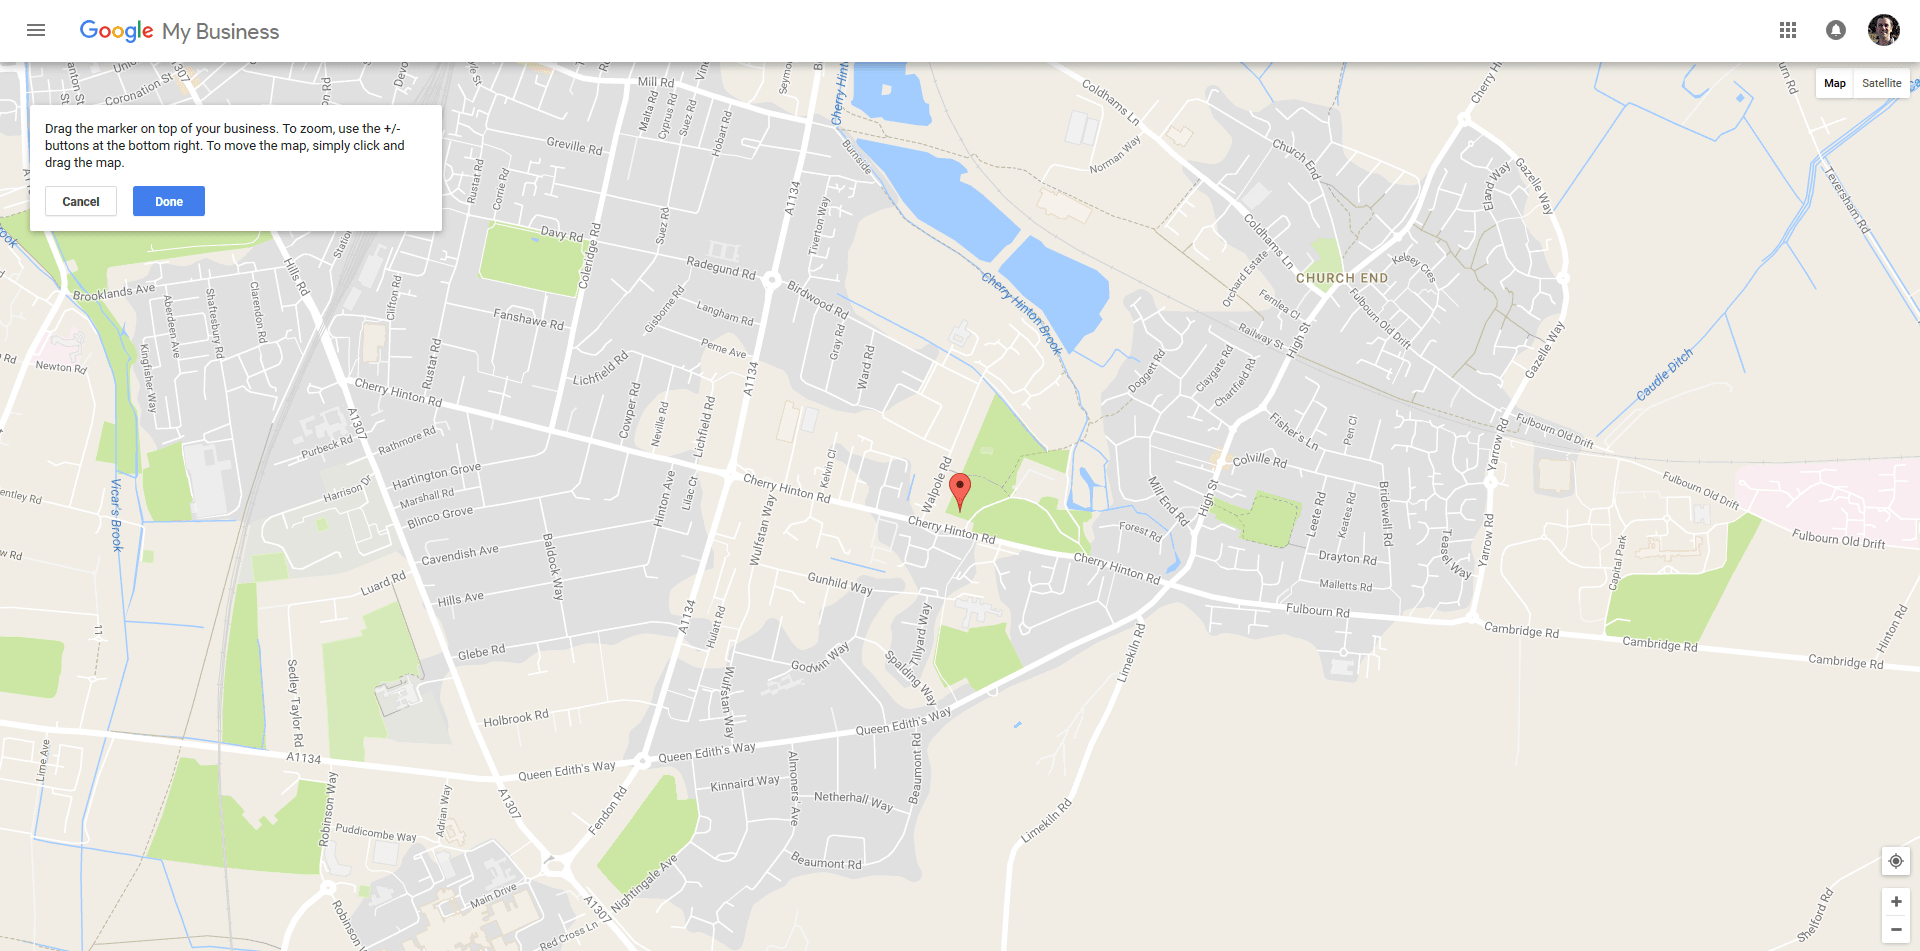 Screenshot from setting up a Google My Business listing showing the map